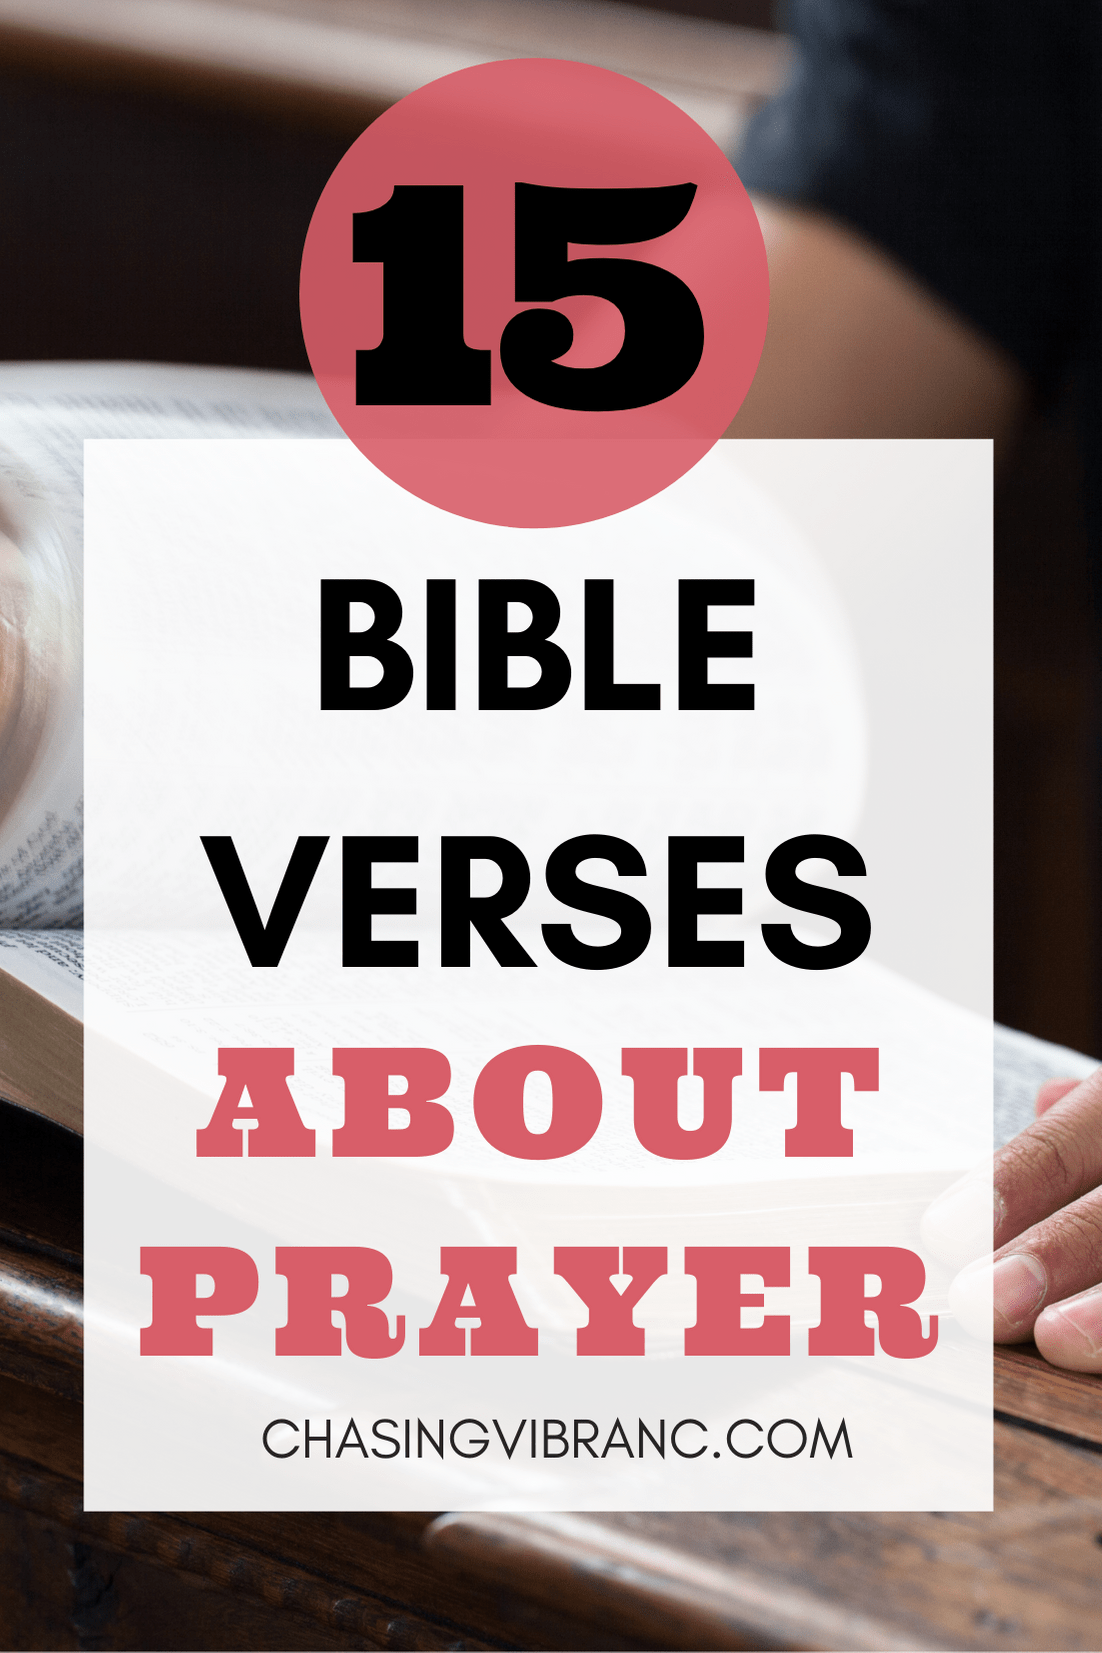 15 Prayerful Bible Verses To Build Your Faith Chasing Vibrance Try these seven effective strategies that the pros use to go from casual streamer to twitch partner. 15 prayerful bible verses to build your